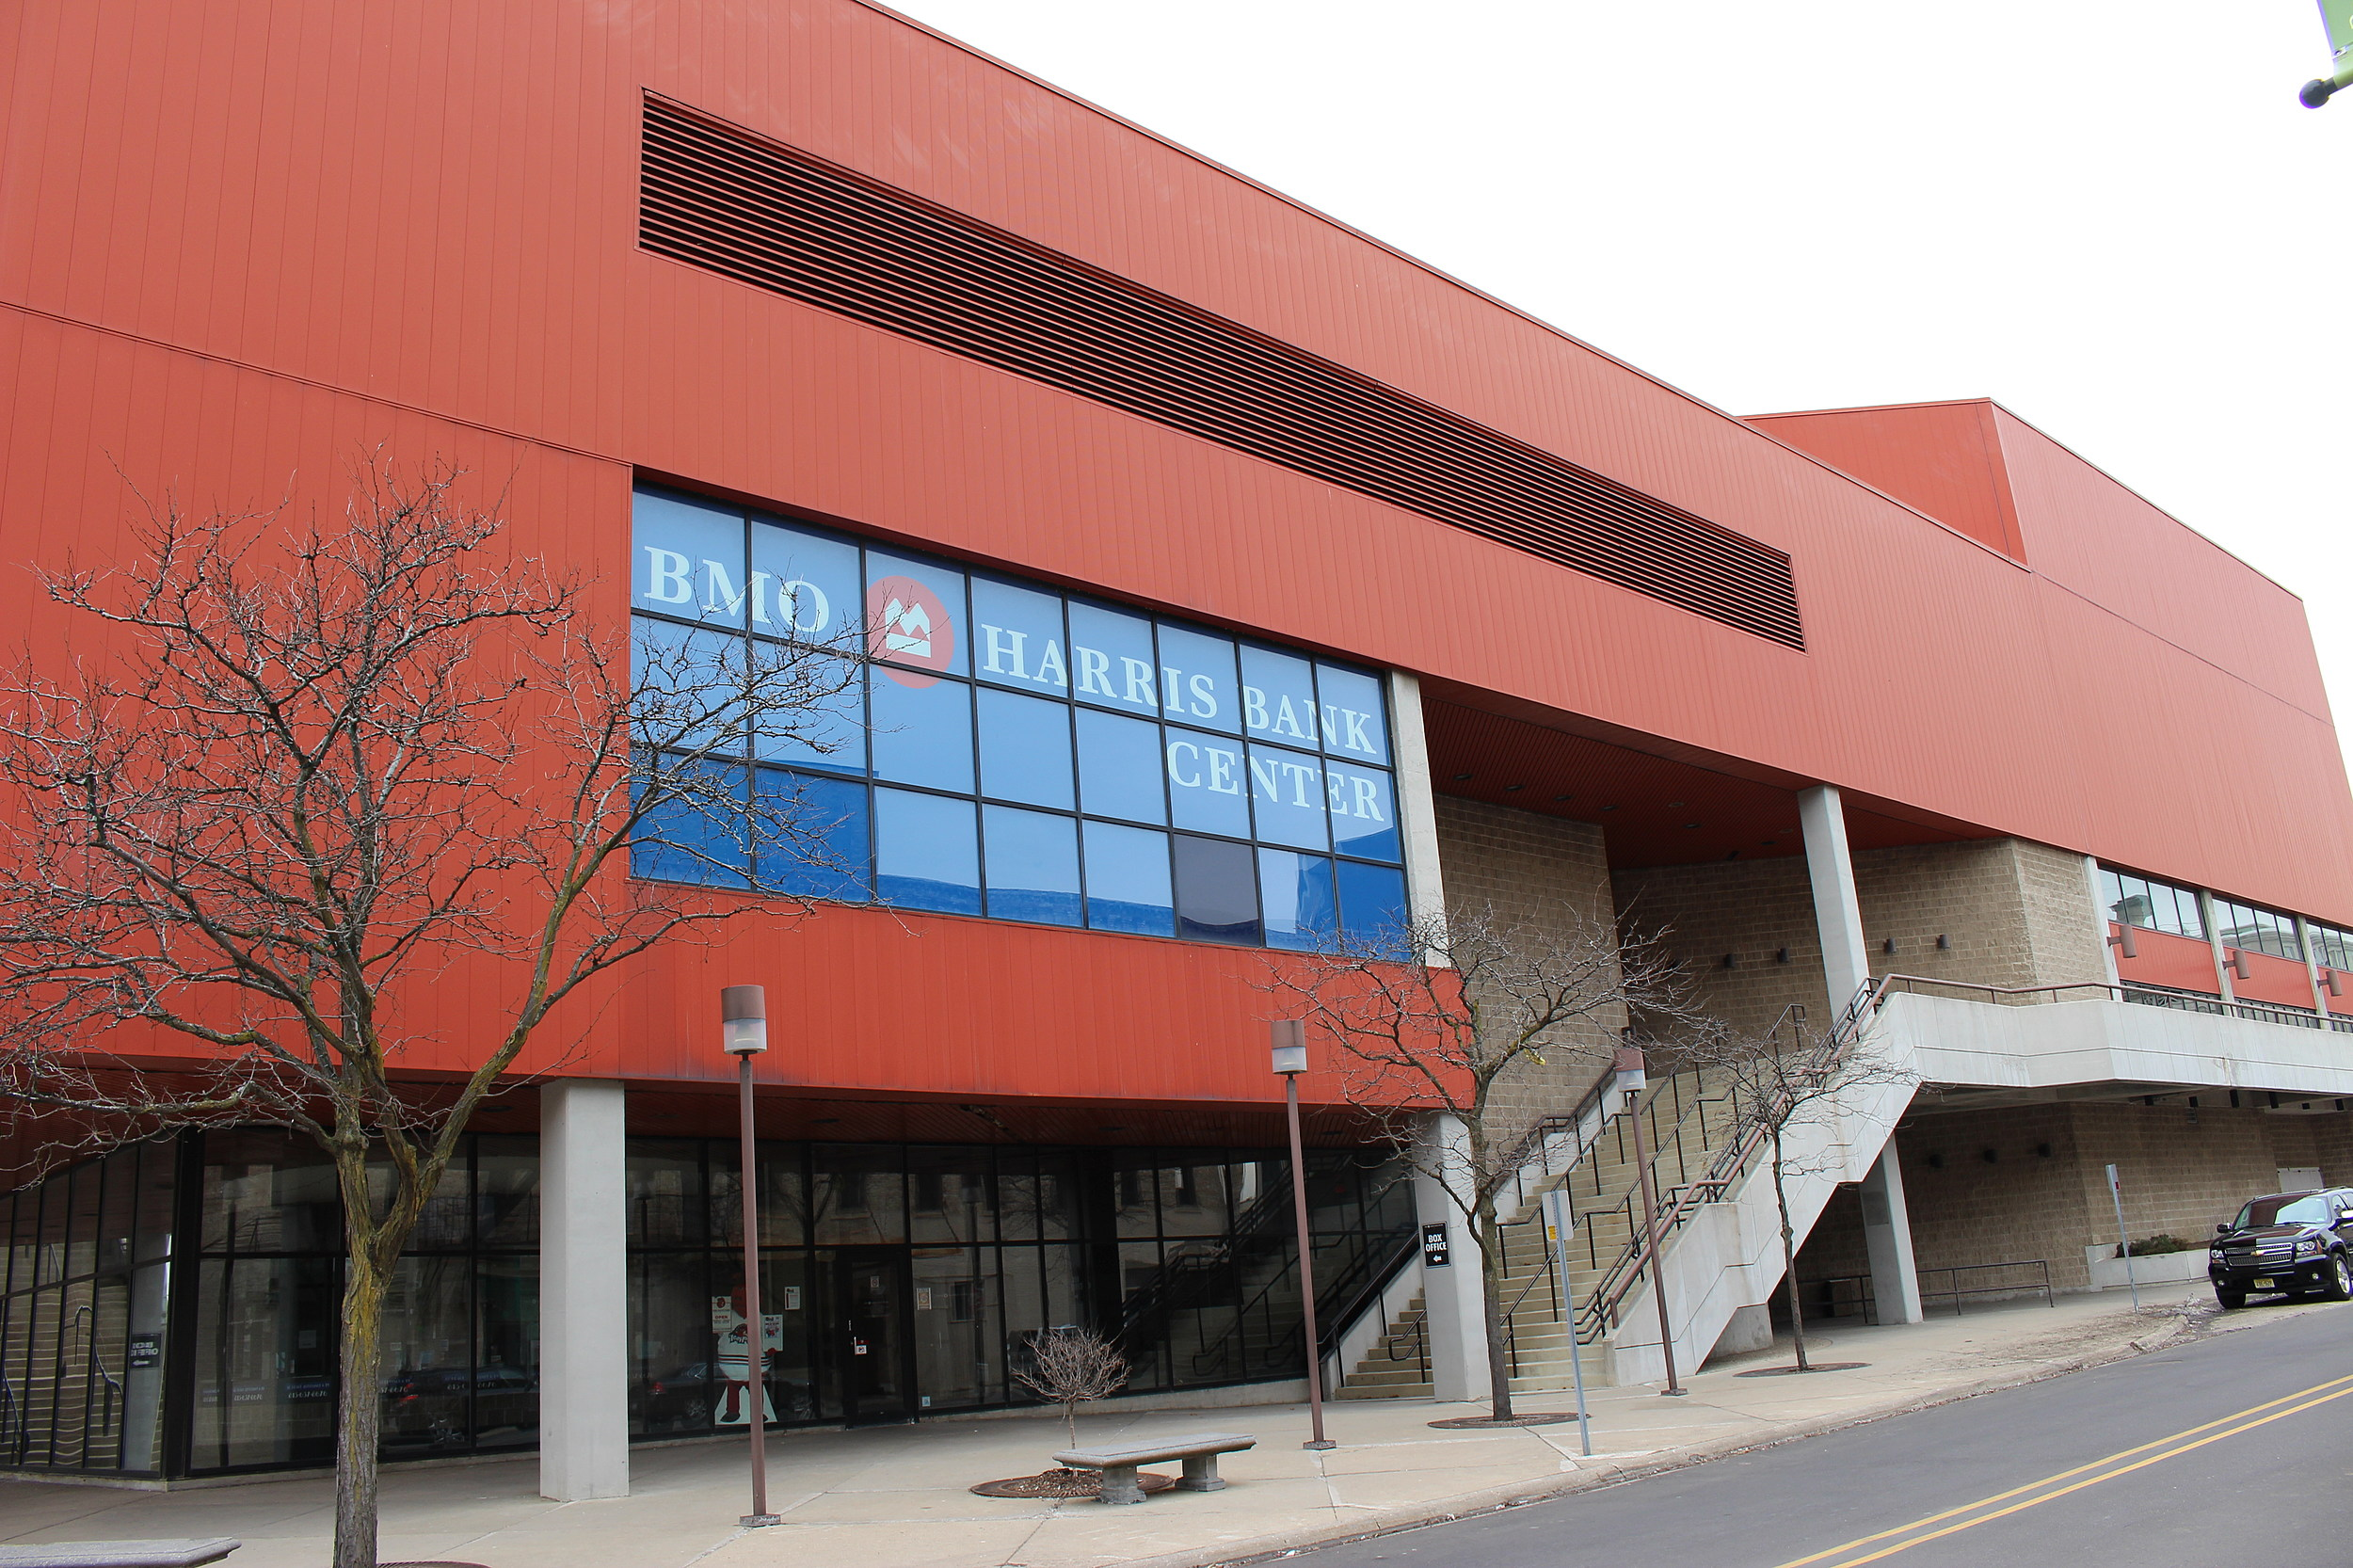 Rockford S Bmo Harris Bank Center Is Making Security Changes